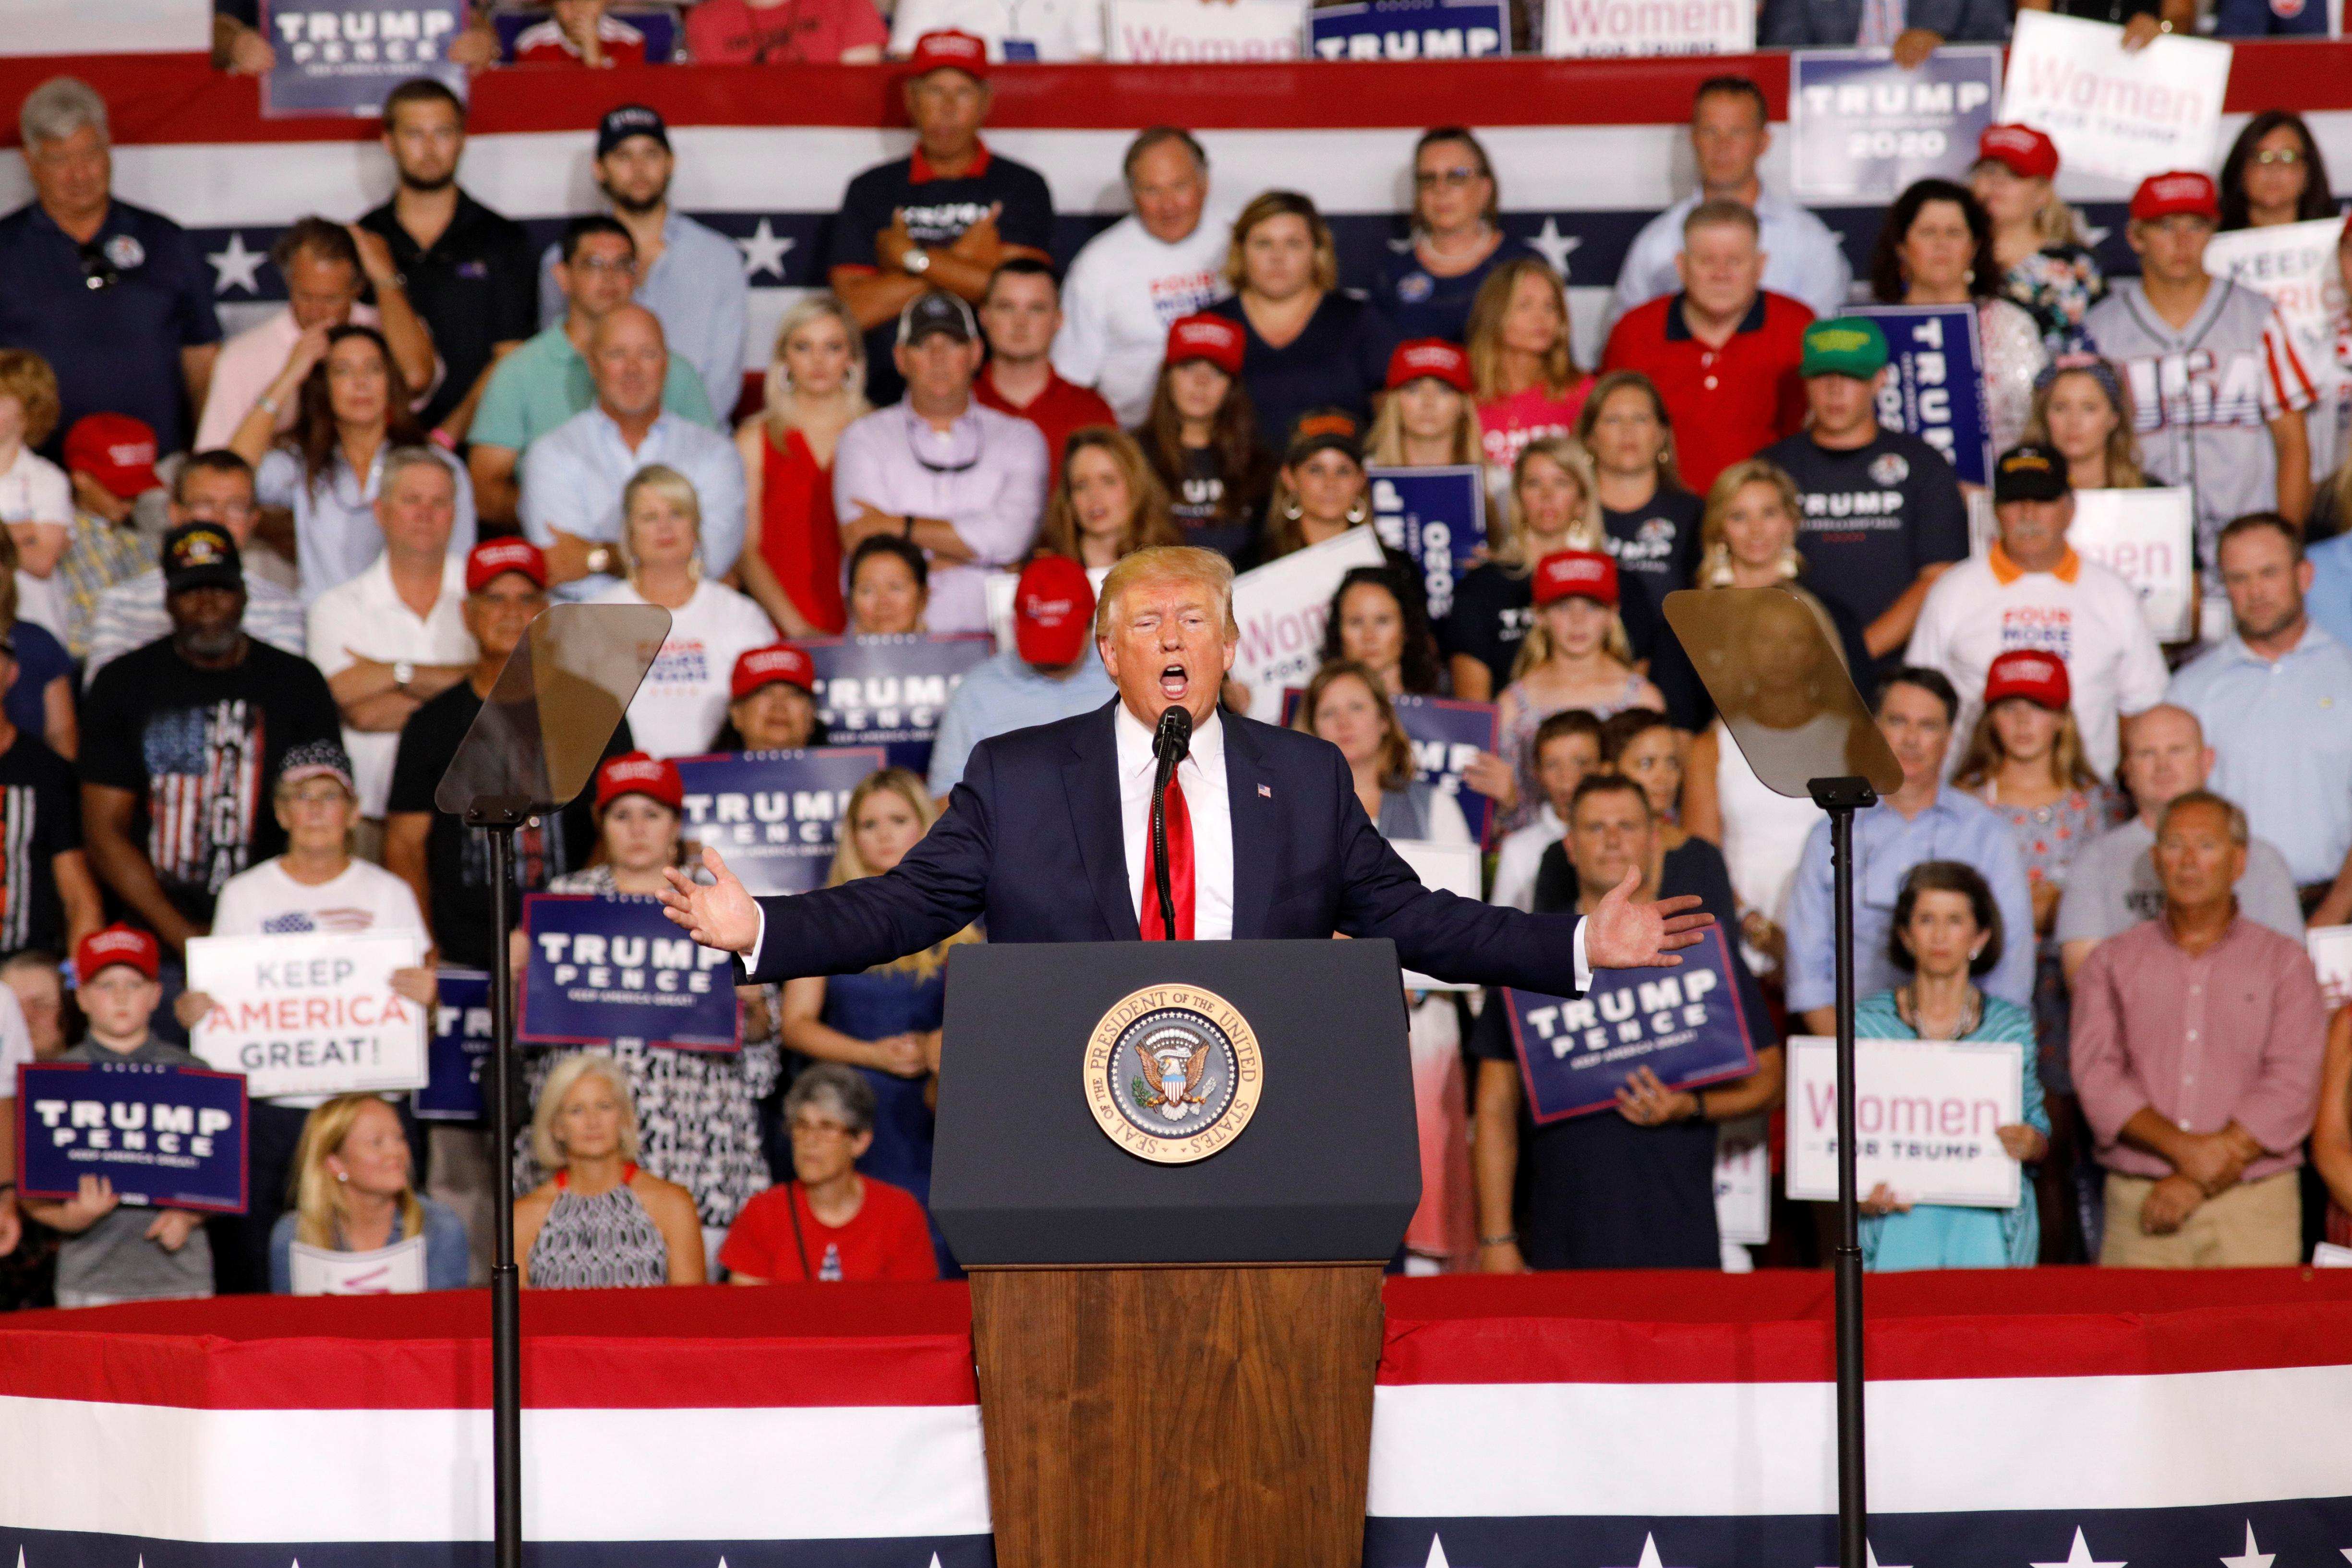 Trump disavows 'send her back' rally chant, many Republicans alarmed